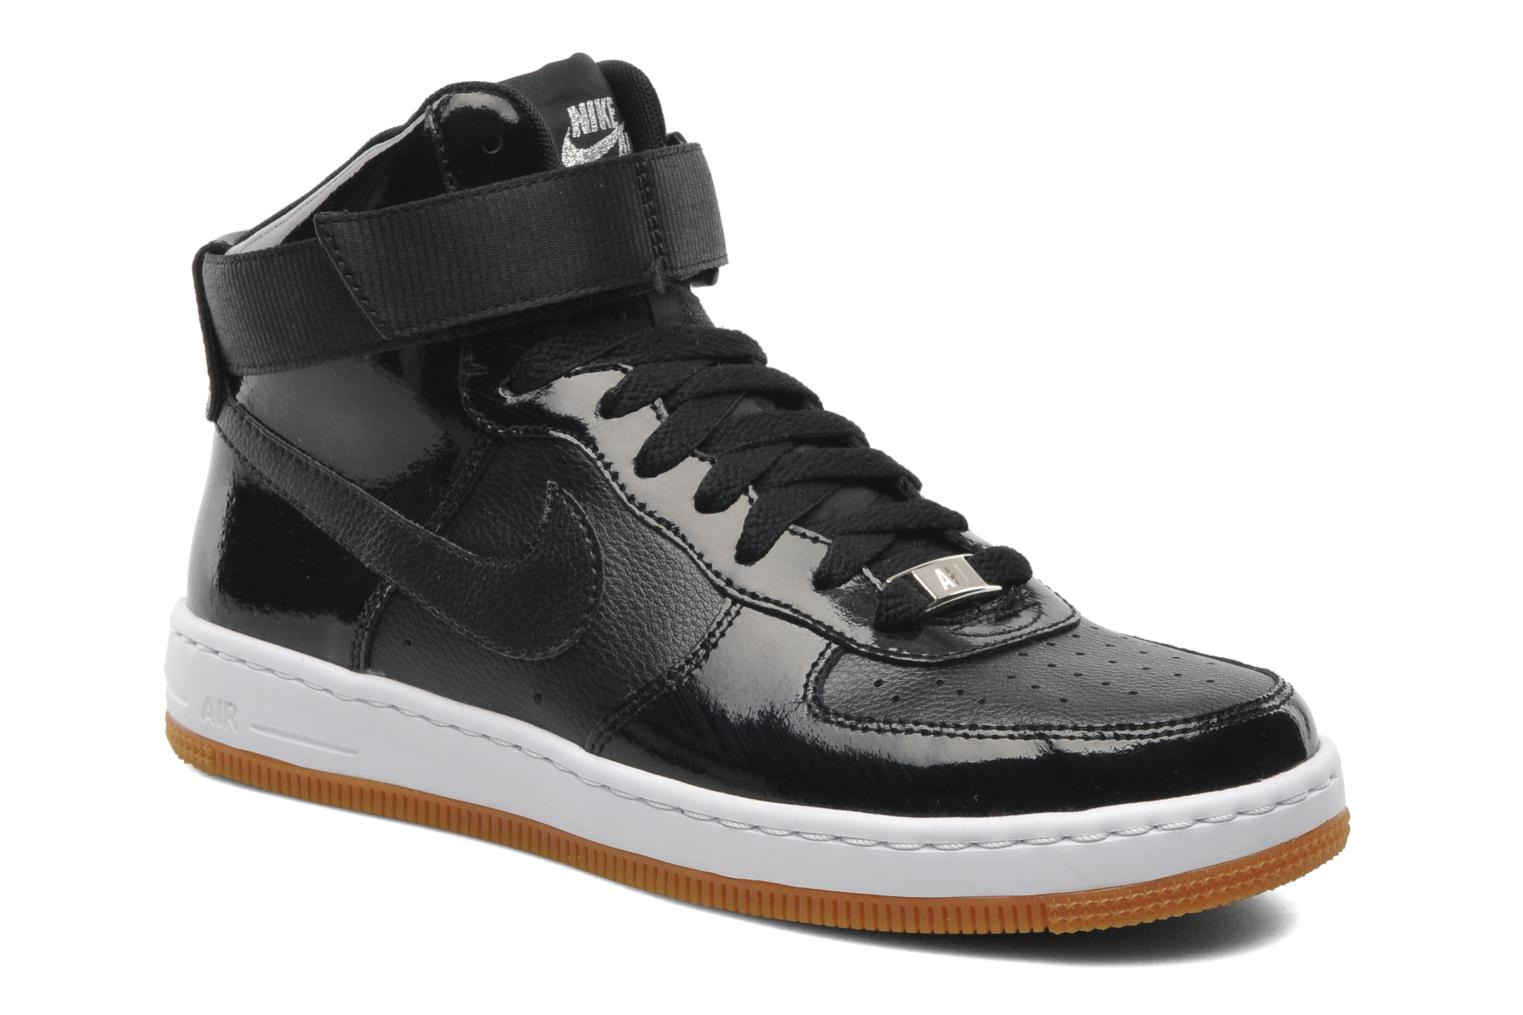 nike w nike air force 1 ultra force mid trainers in black. Black Bedroom Furniture Sets. Home Design Ideas